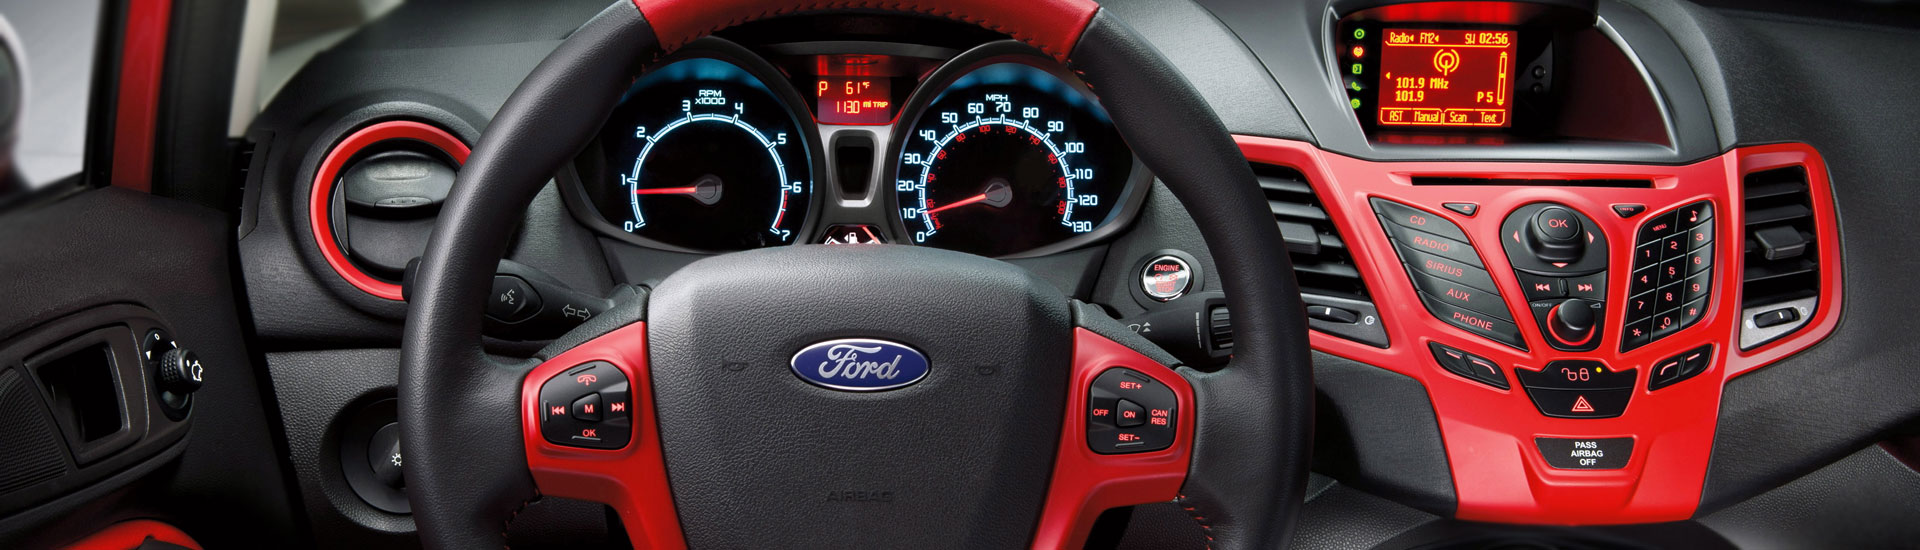 2001 Ford Escape Custom Dash Kits